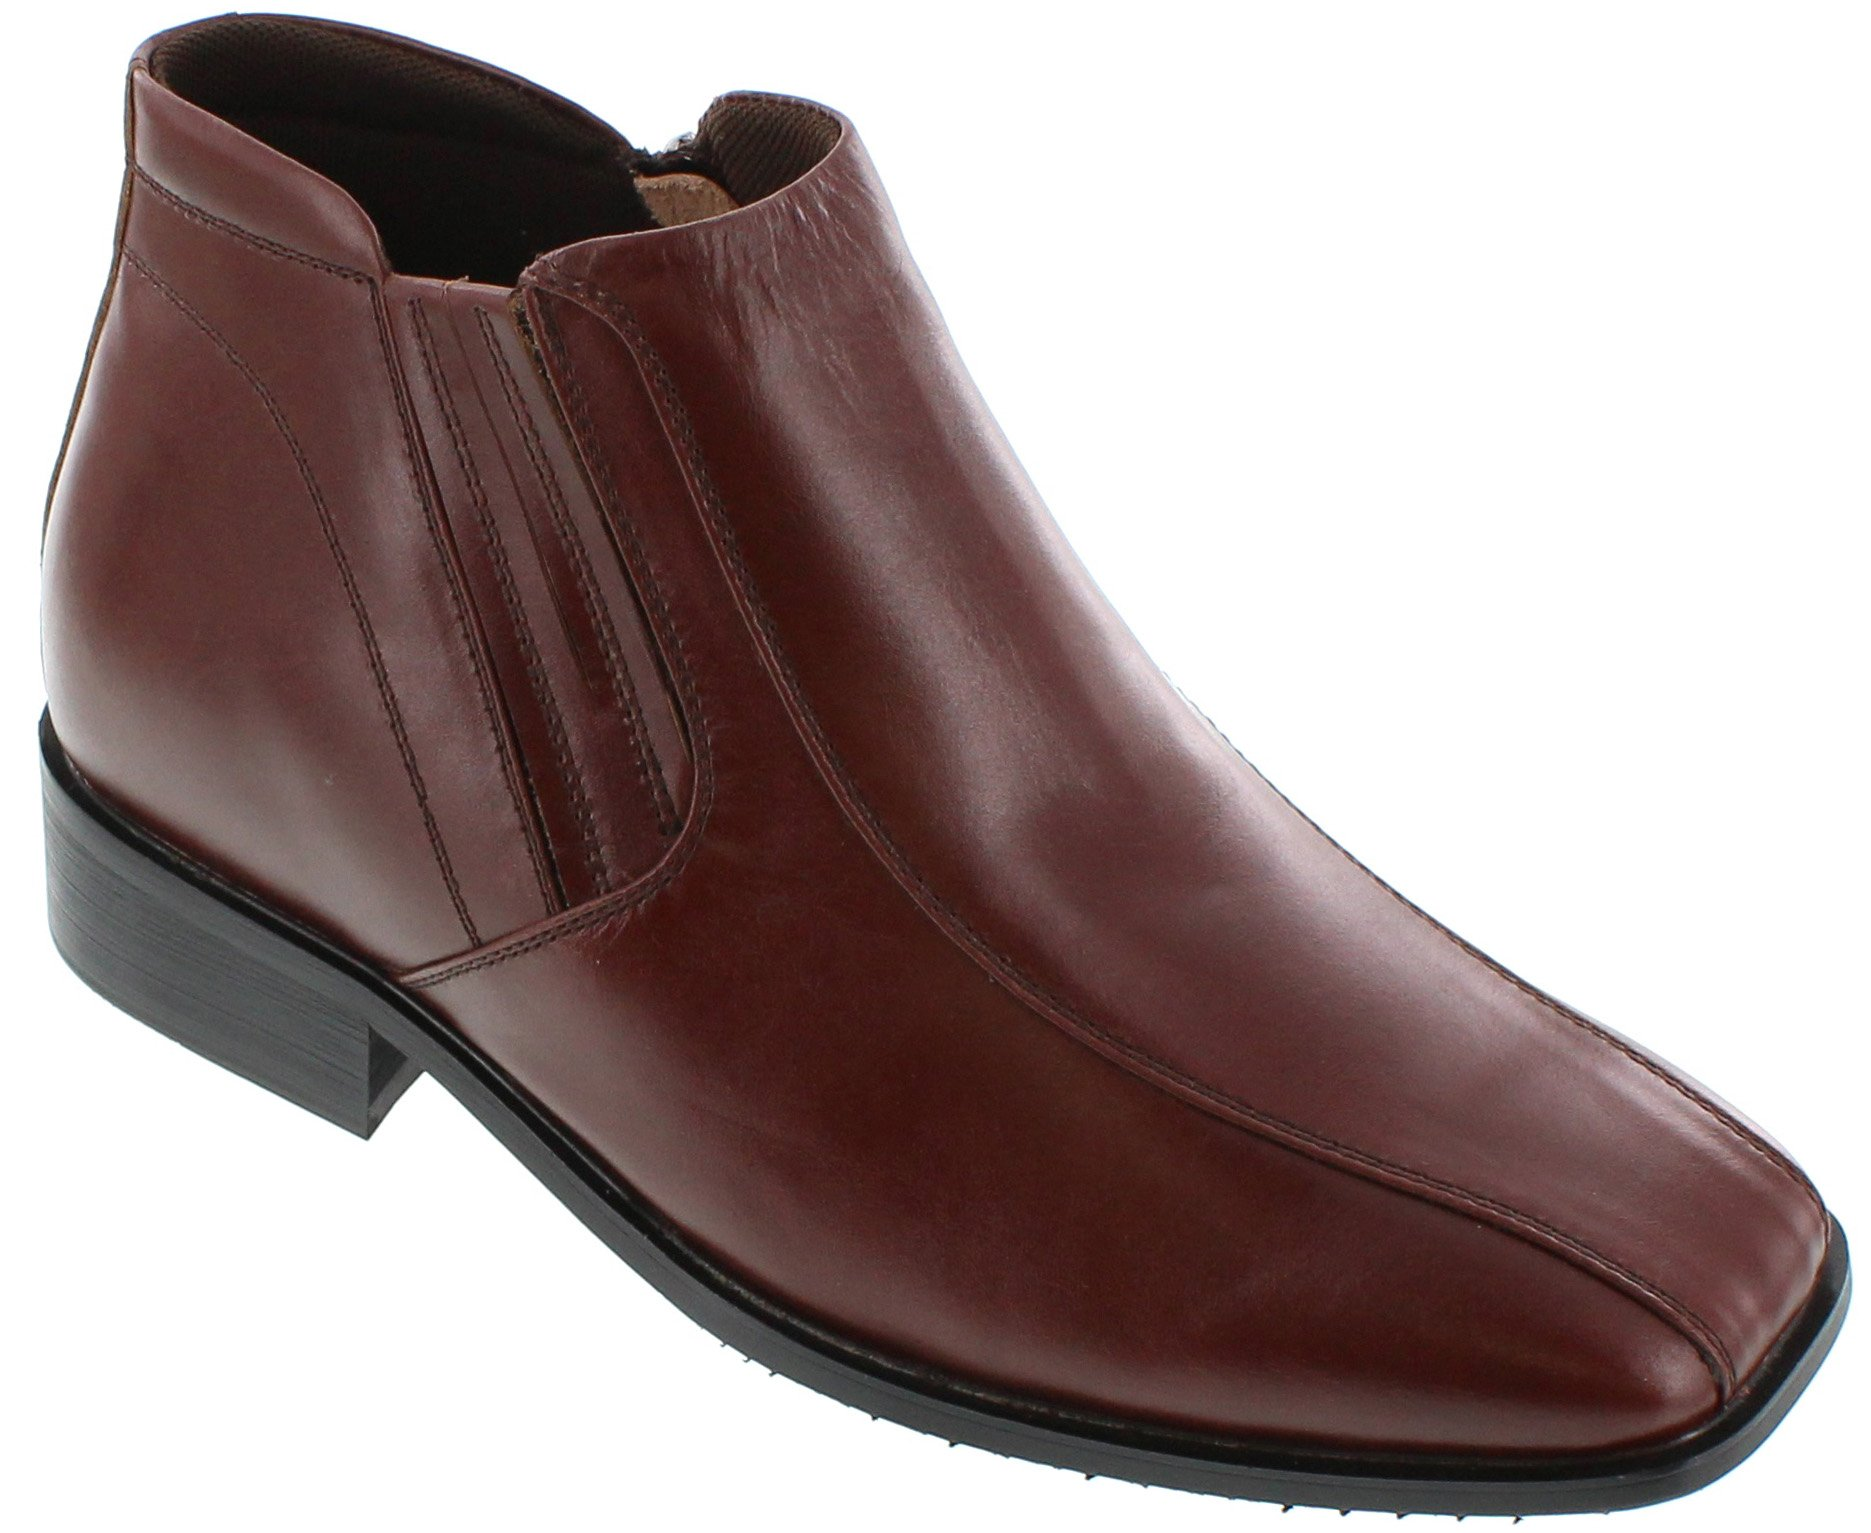 CALDEN - K99805-1 - 3.6 Inches Taller - Size 8 D US - Height Increasing Elevator Shoes (Brown Dress Boots)